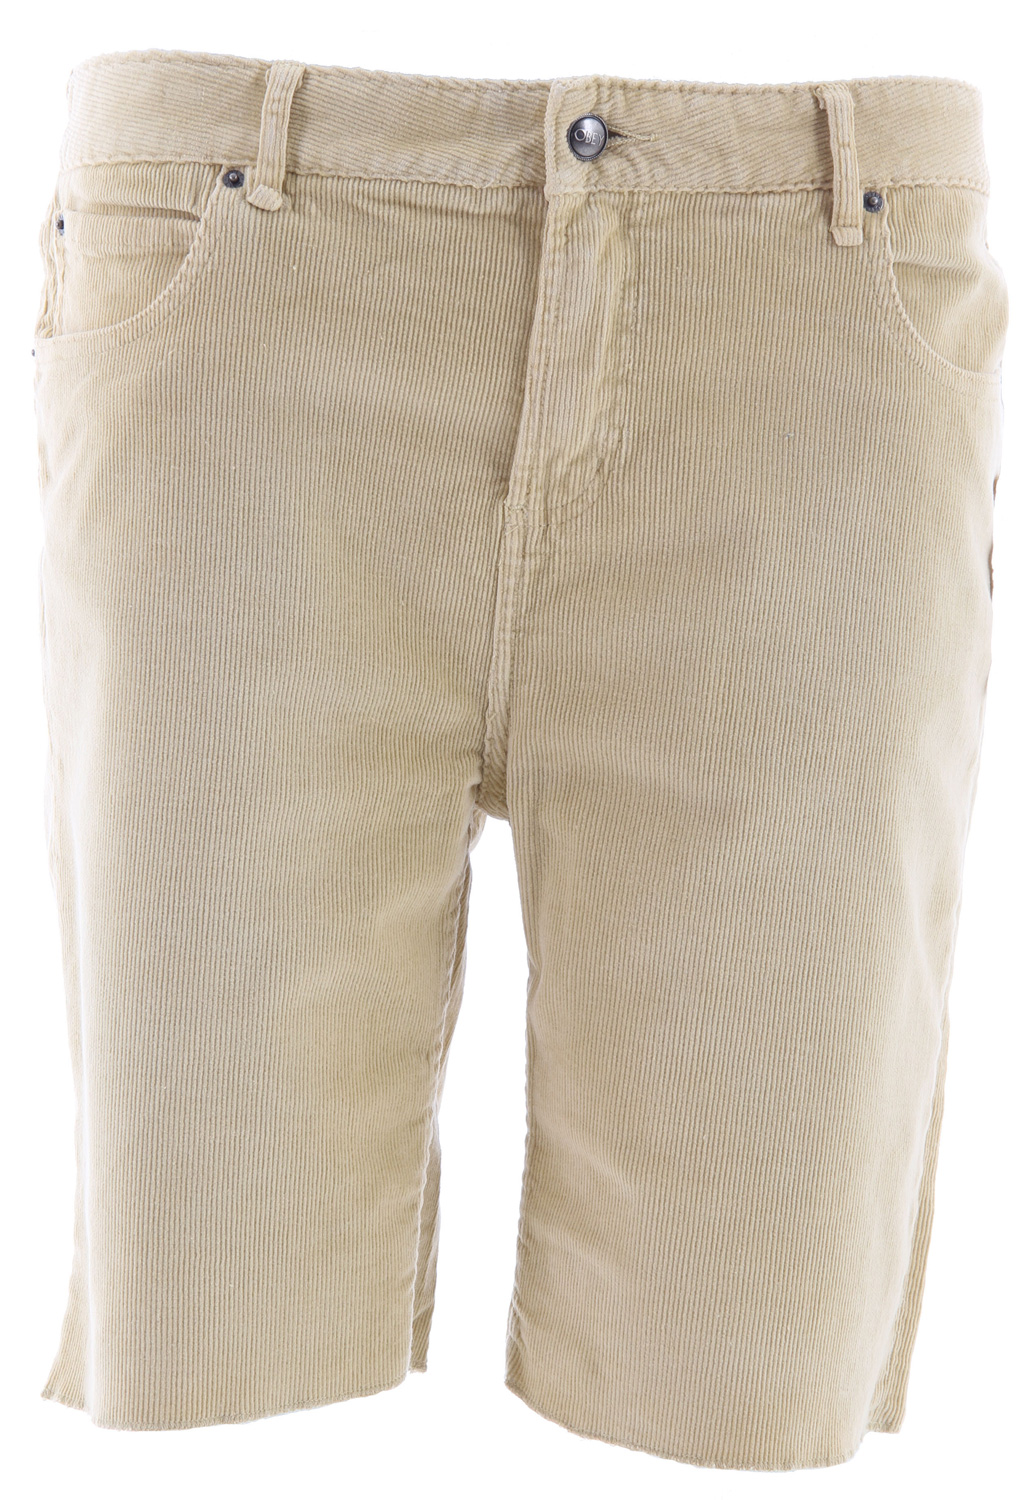 "Key Features of the Obey Juvee Cord Cut Offs Mens Shorts: 99% Cotton/1% Spandex Slim-fit Corduroy short with modern trims and leather patch on back waist 8.5"" - $41.95"